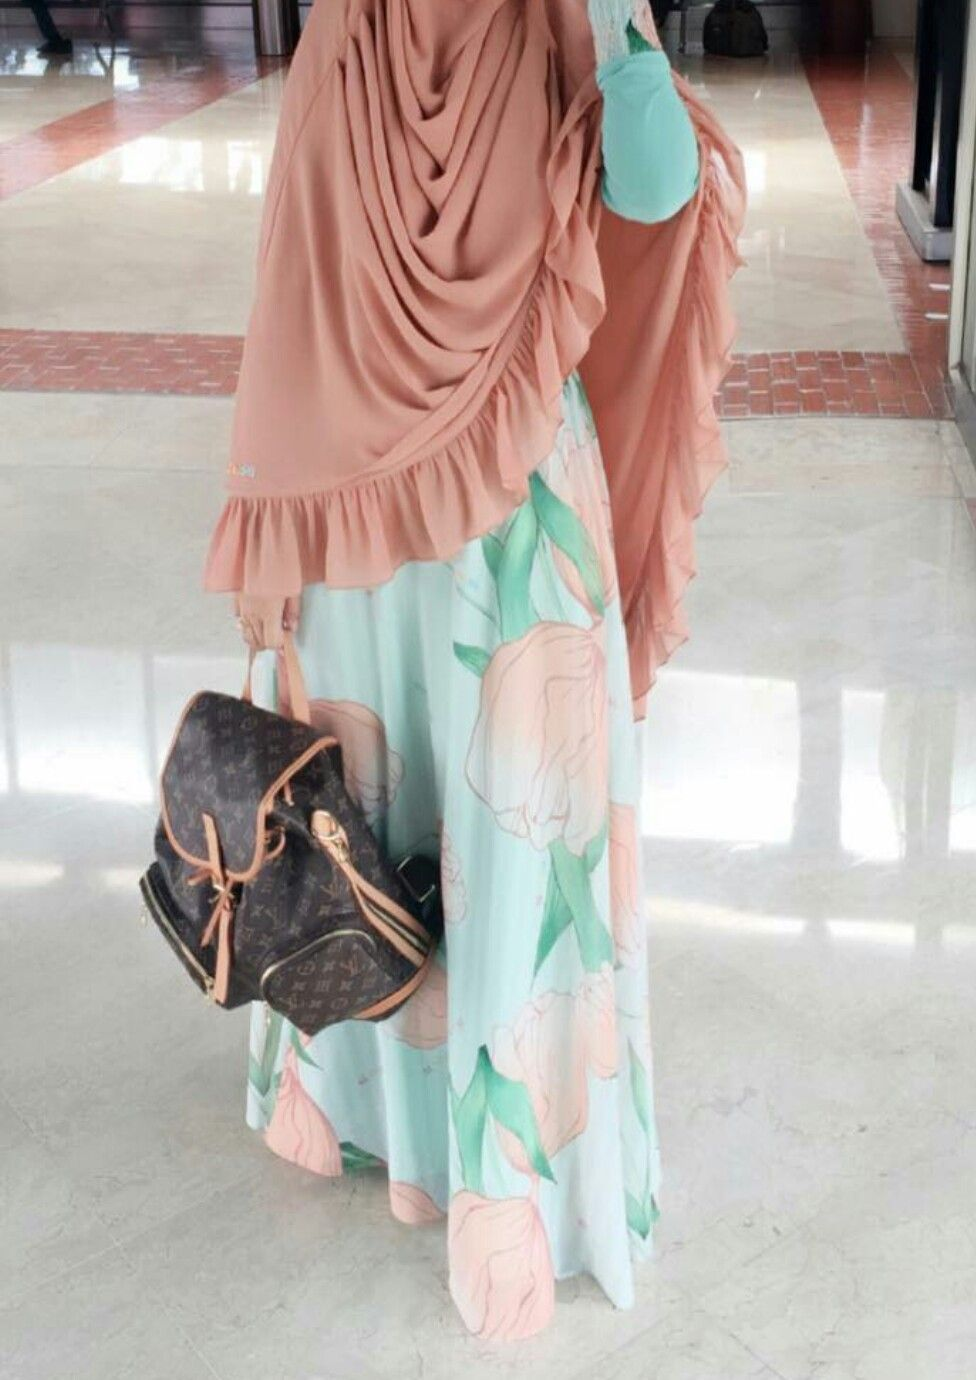 Pin by ria dwi f on hijab pinterest hijabs hijab dress and abayas